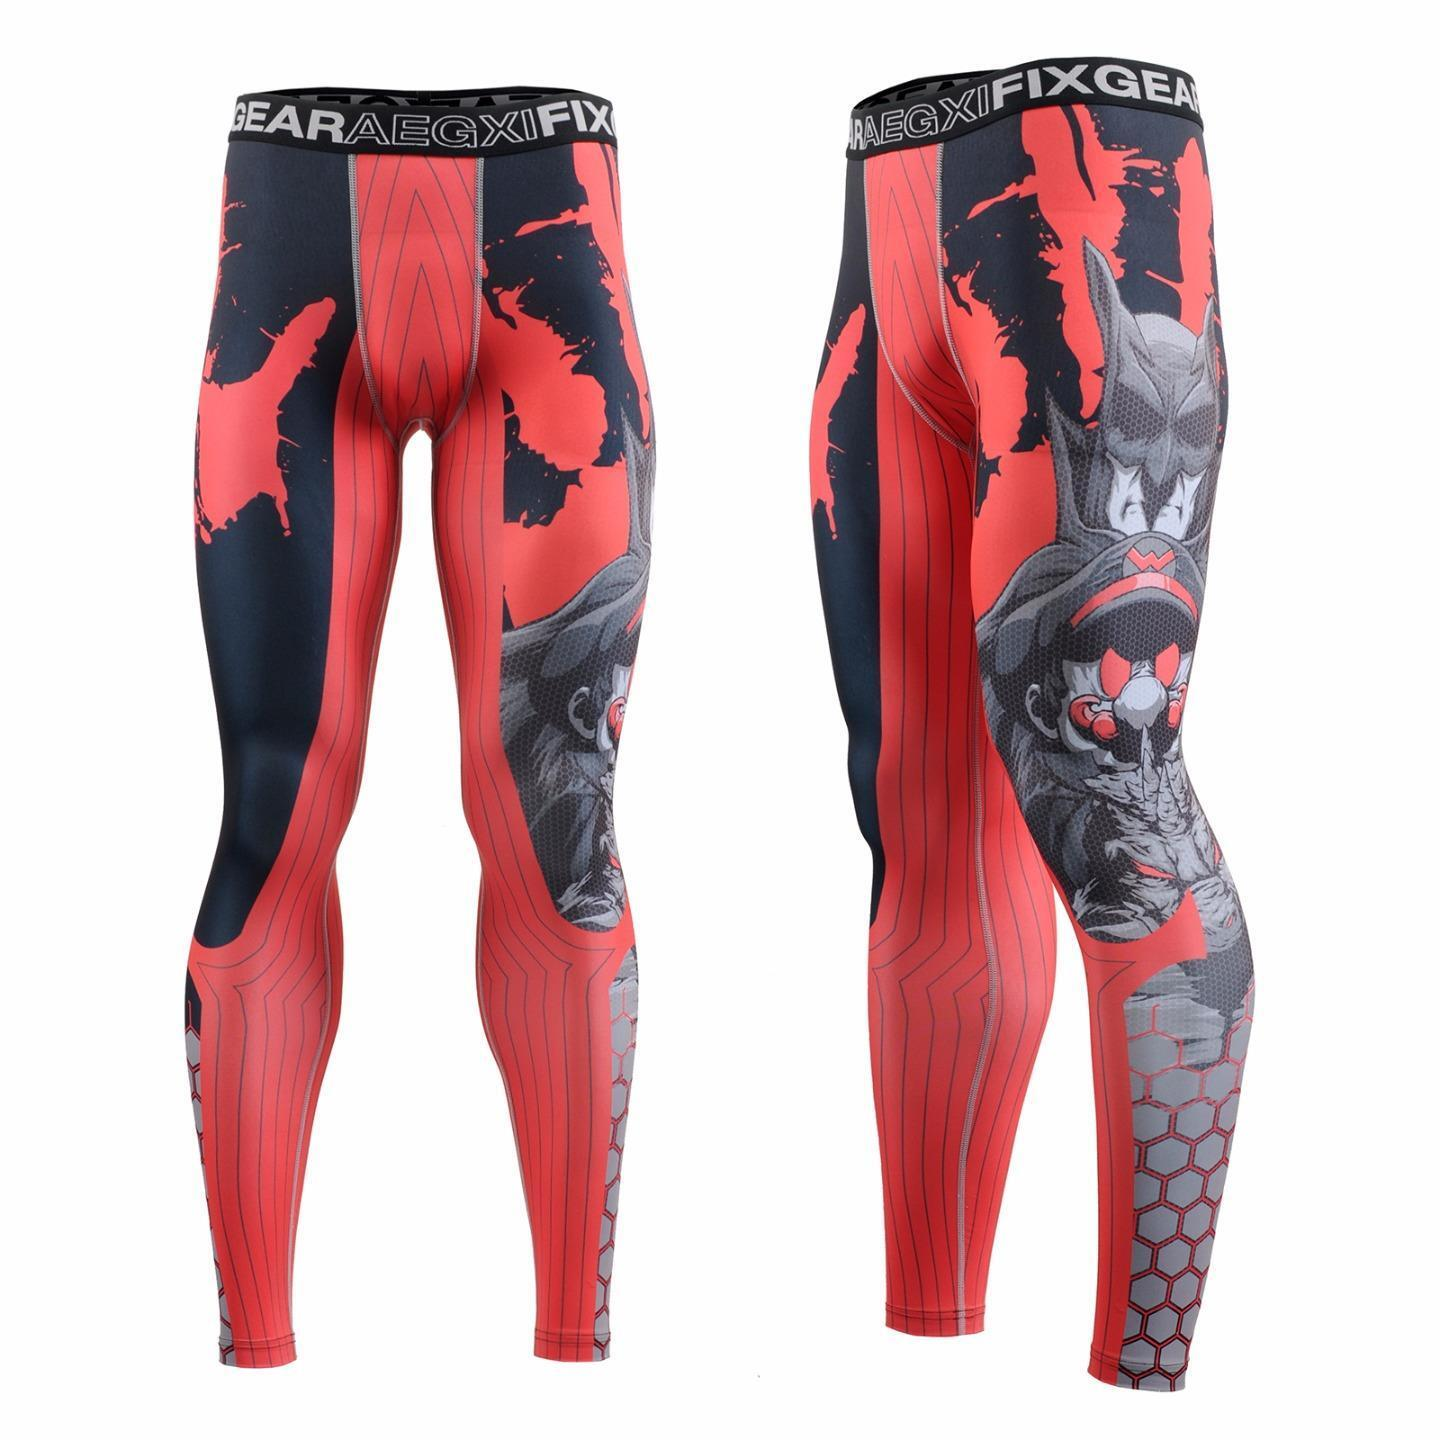 FIXGEAR FPL-H4 Compression Base Layer Tights with Wide Waistband, Crossfit, MMA